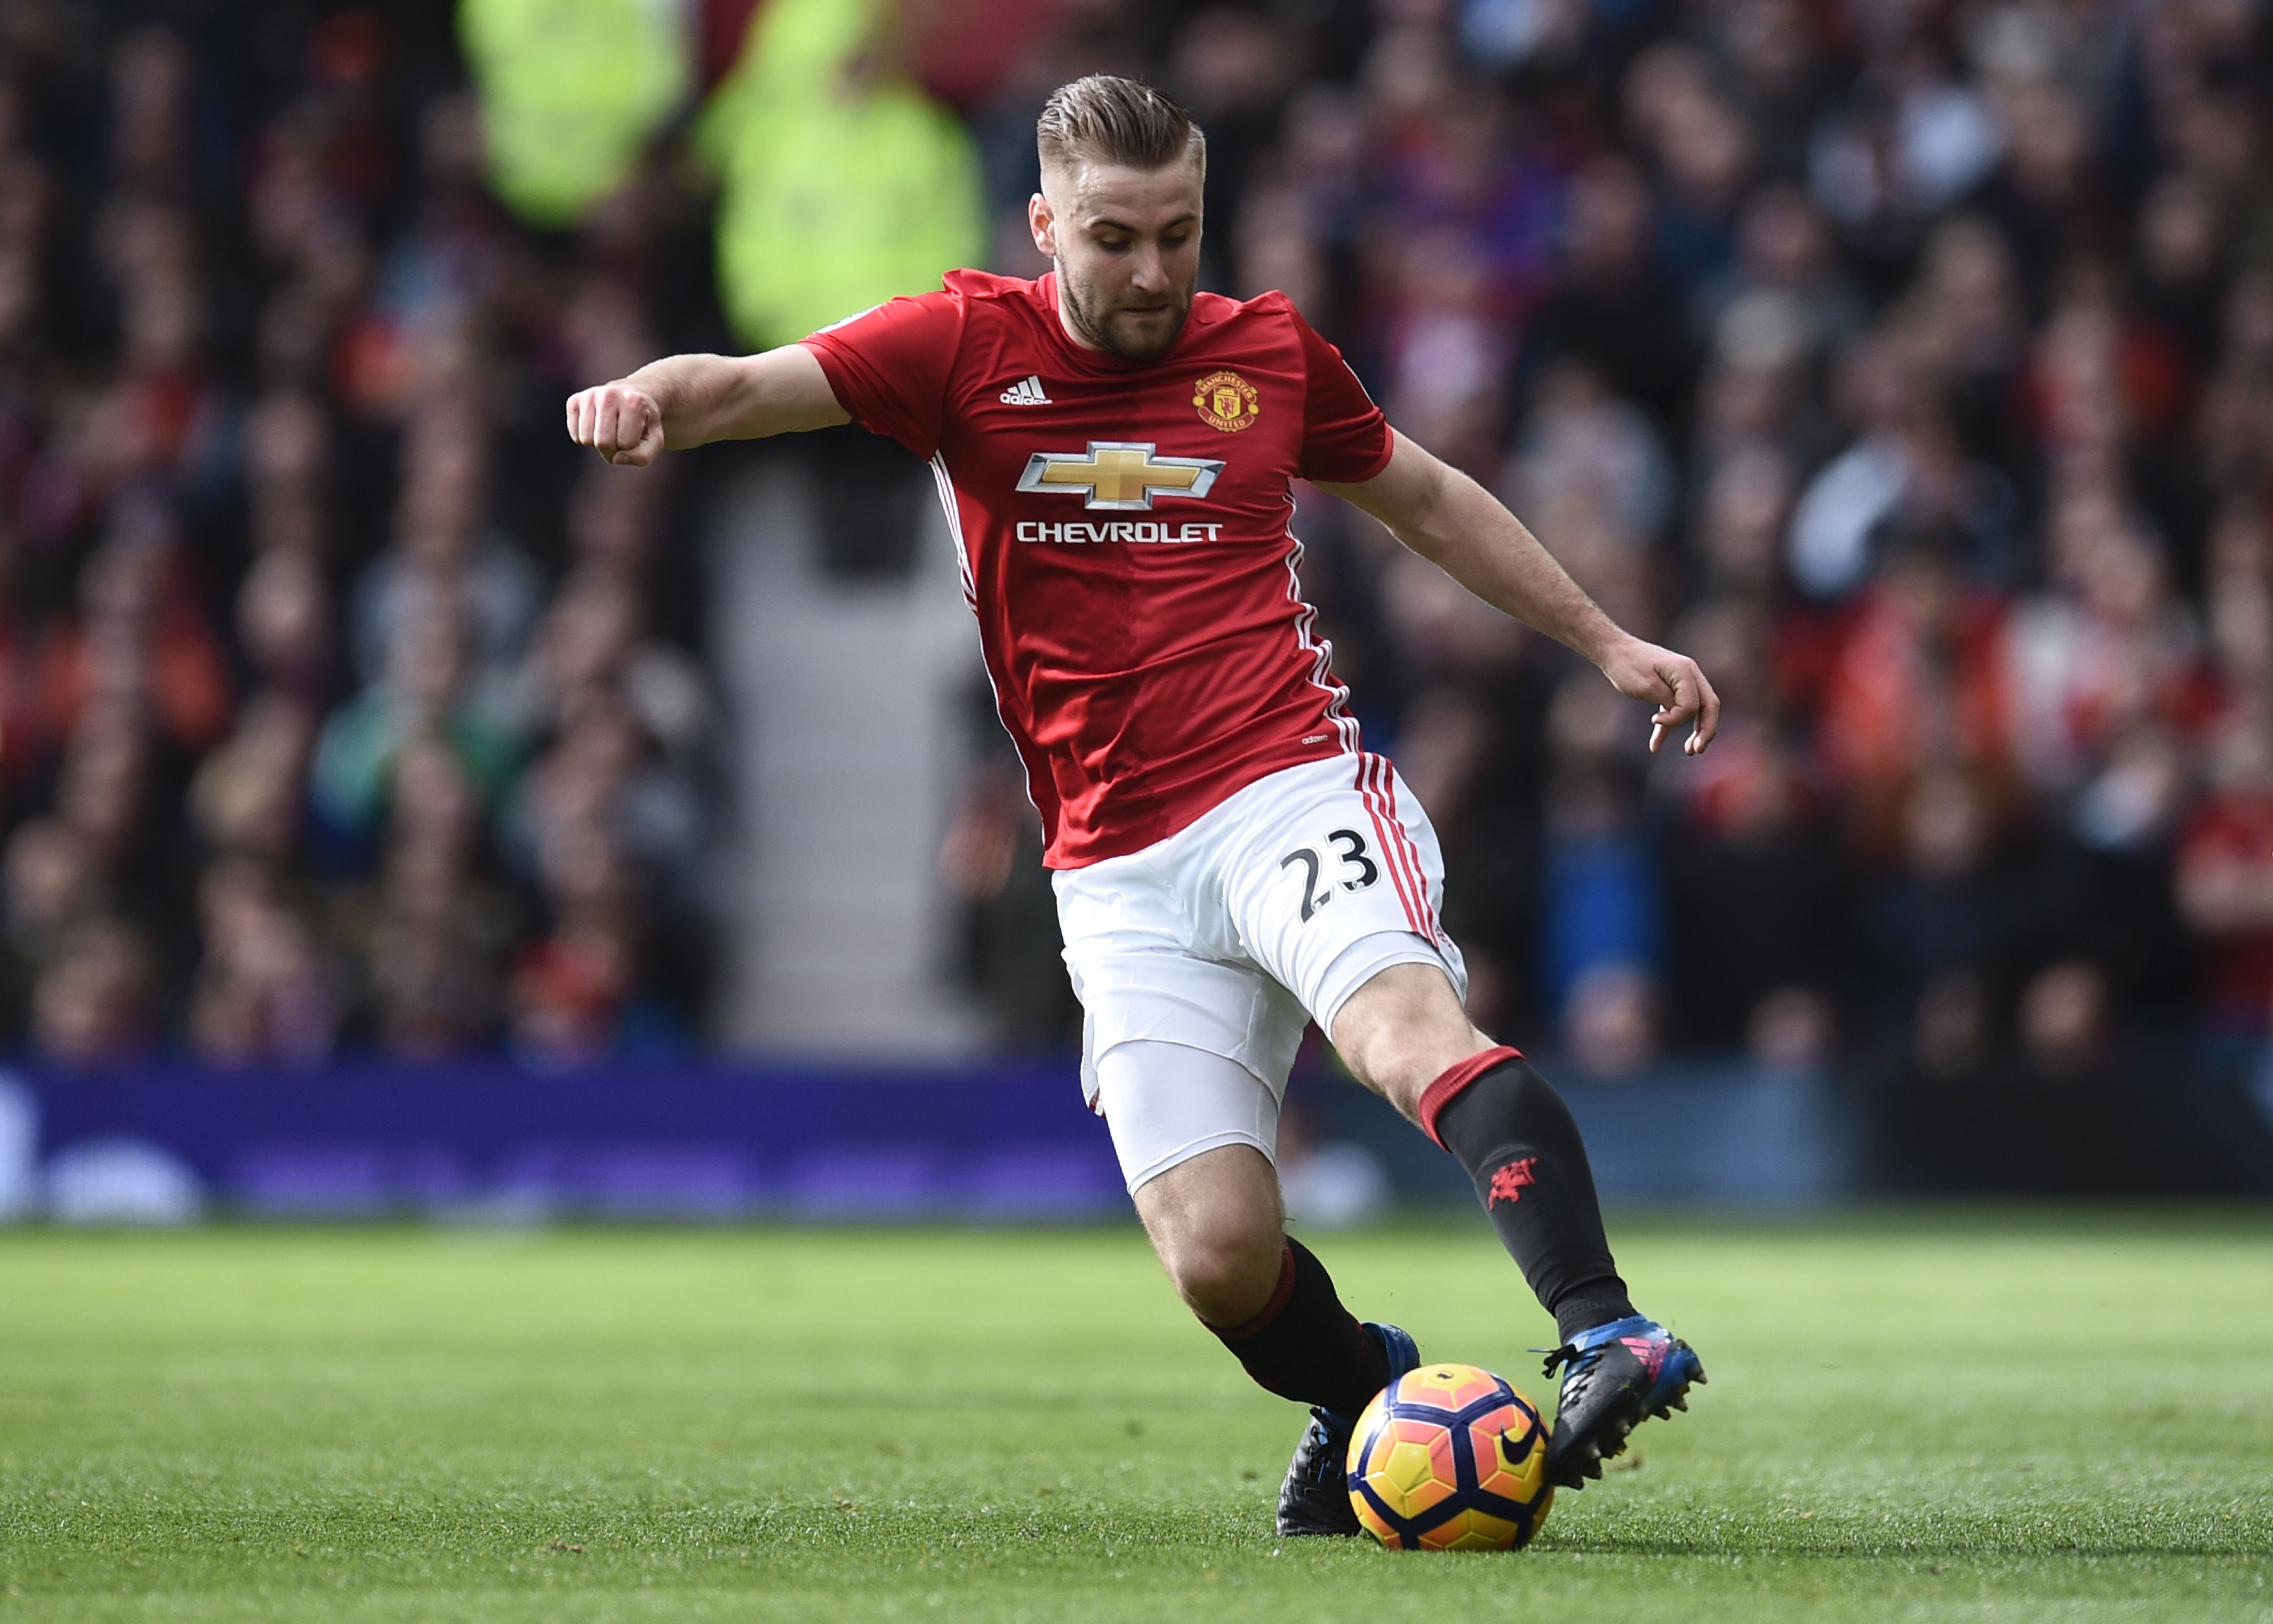 Luke Shaw's agent plays down talk of Manchester United departure